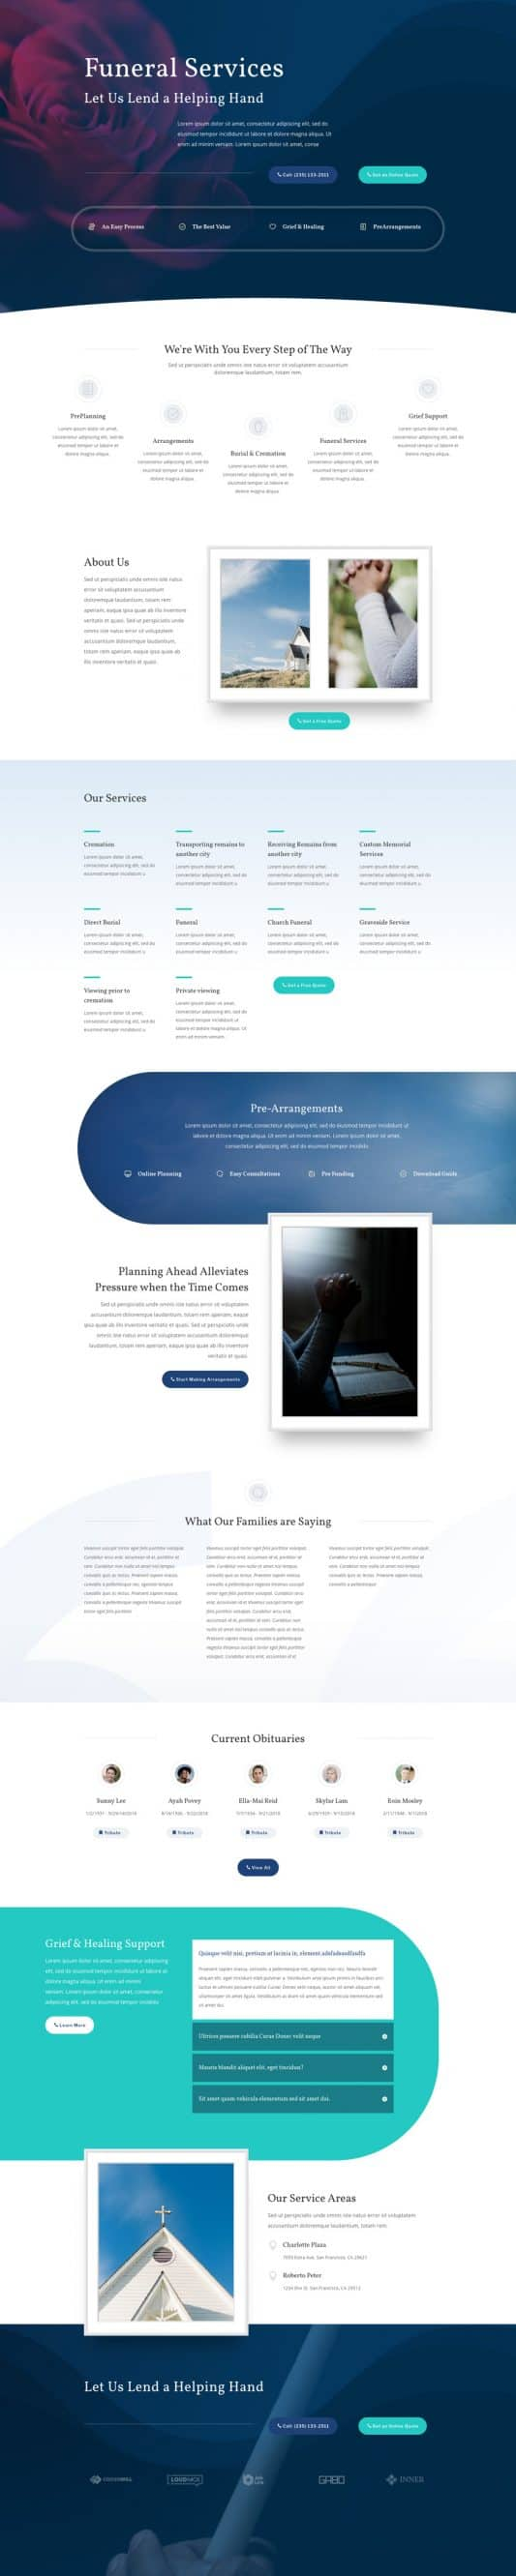 Funeral Home Web Design 4